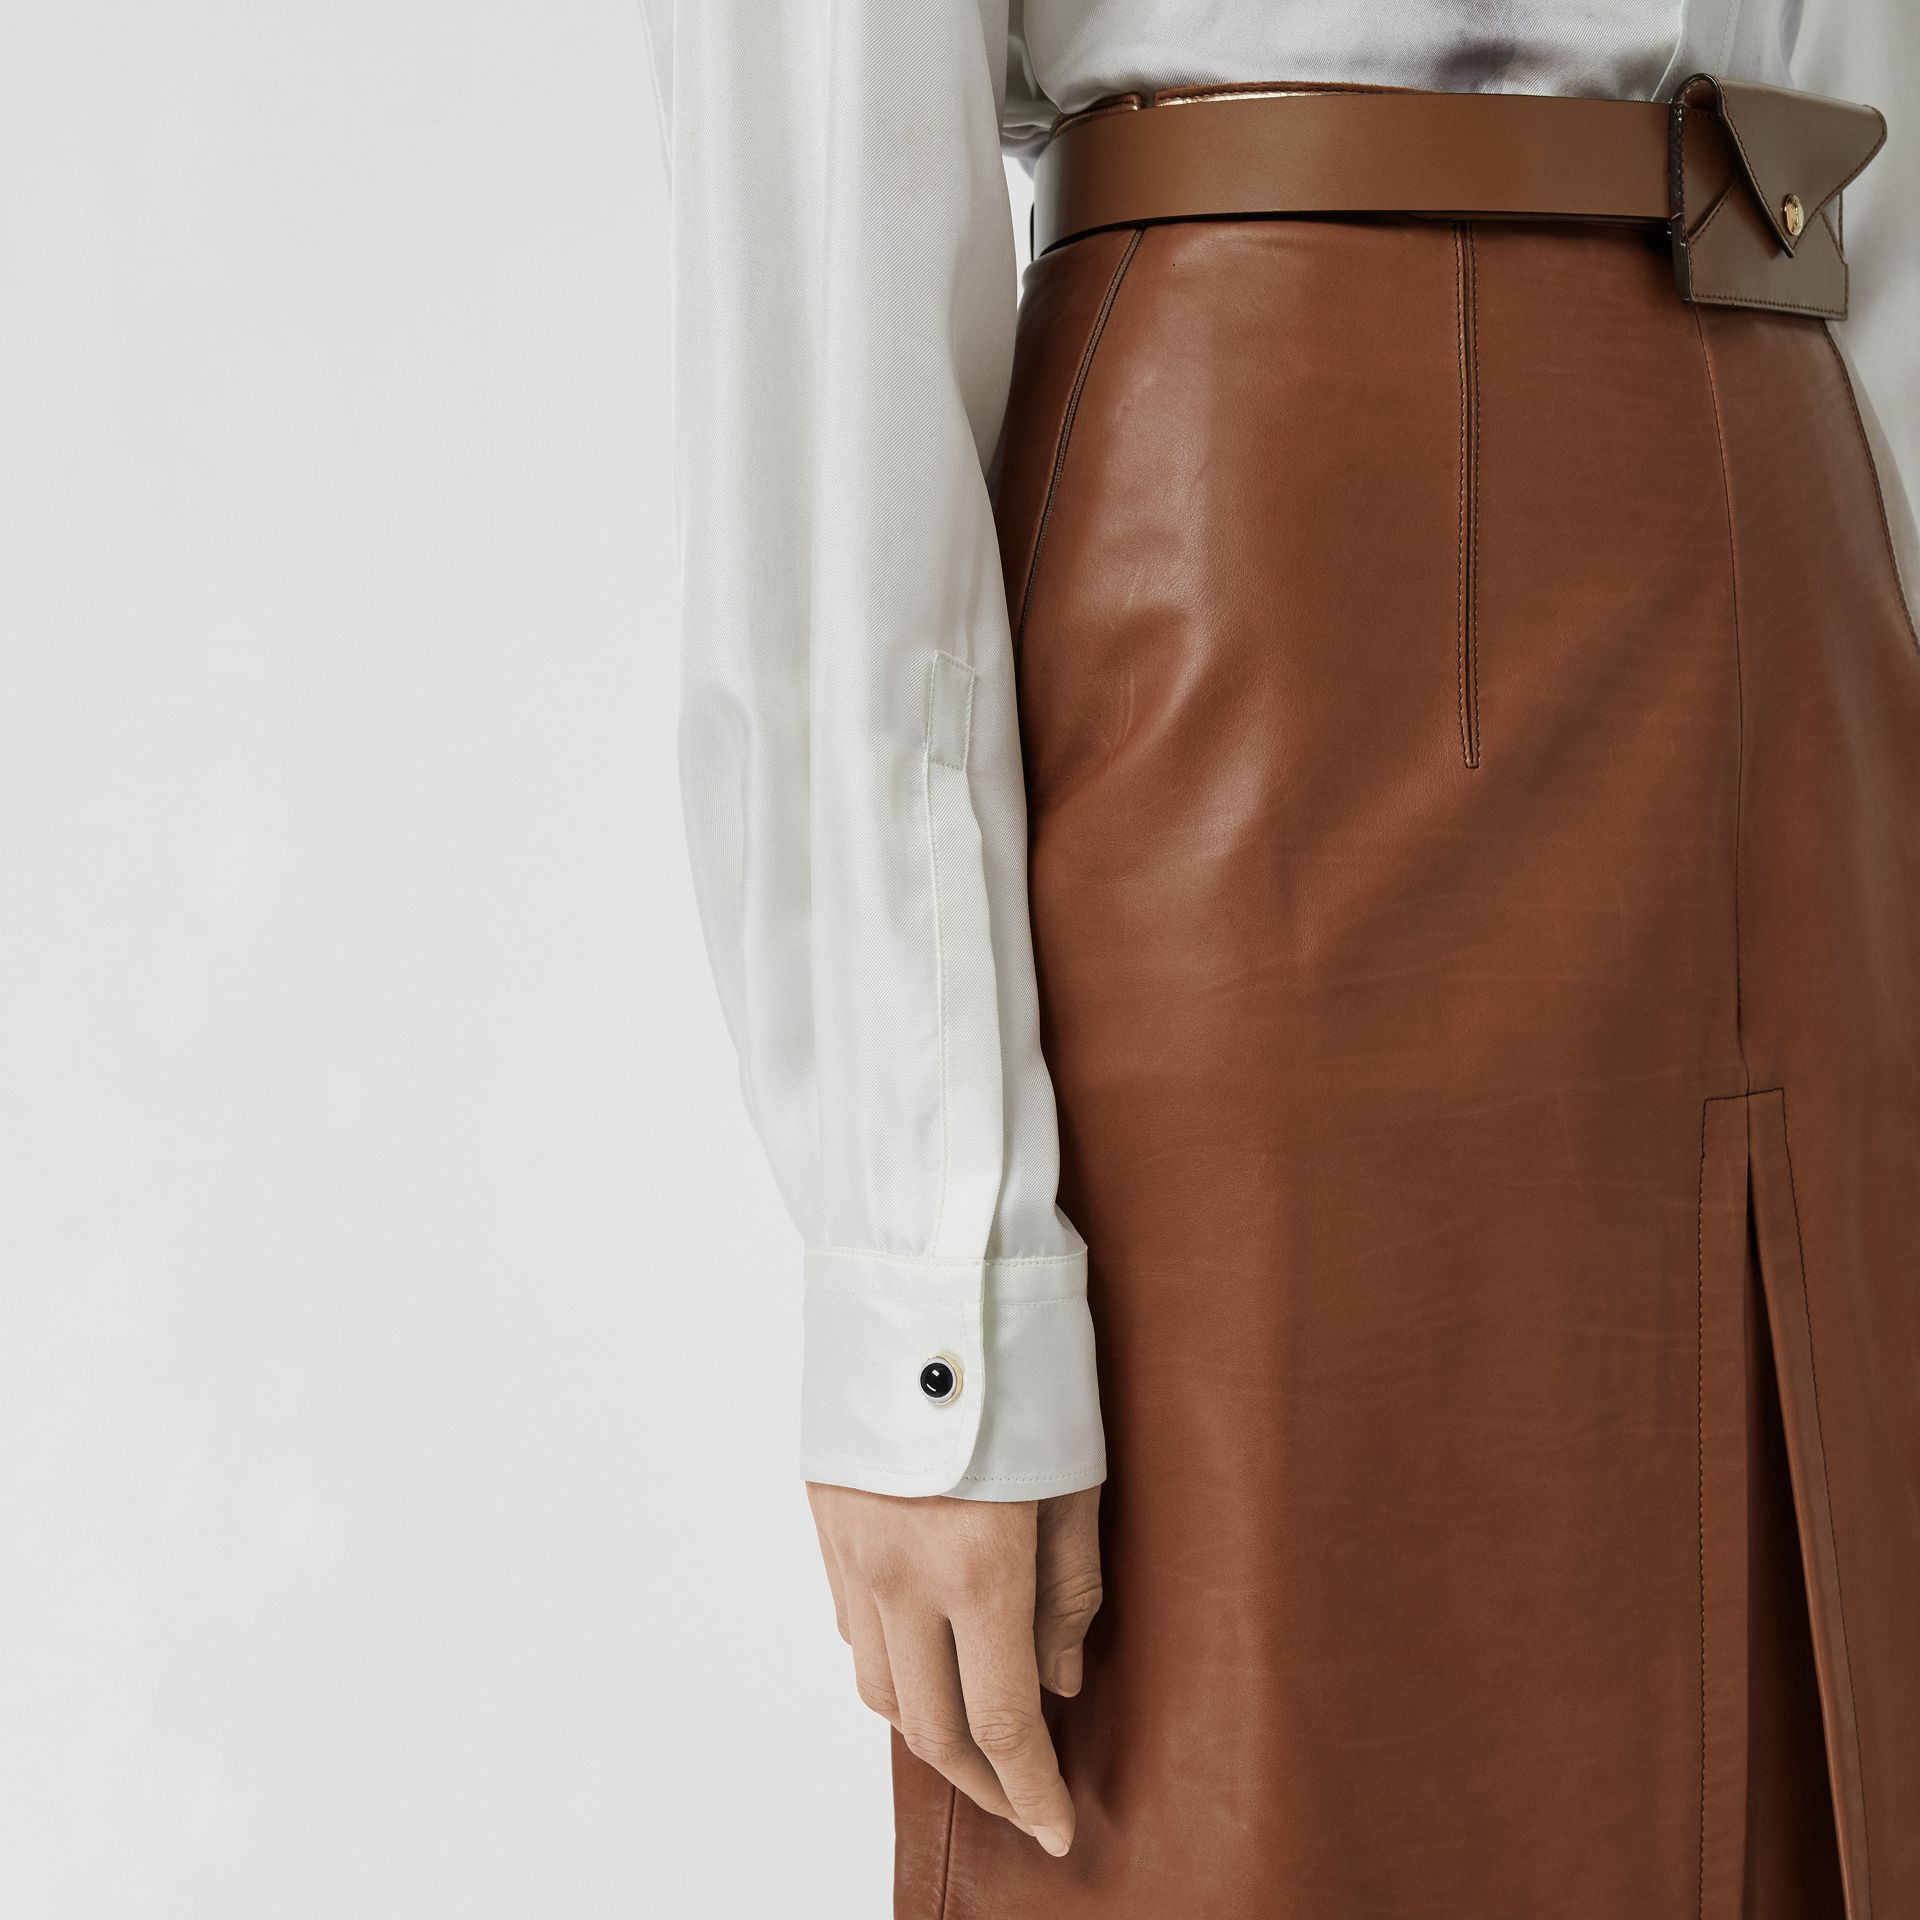 Box Pleat Detail Leather A-line Skirt in Flaxseed - Women | Burberry - gallery image 1